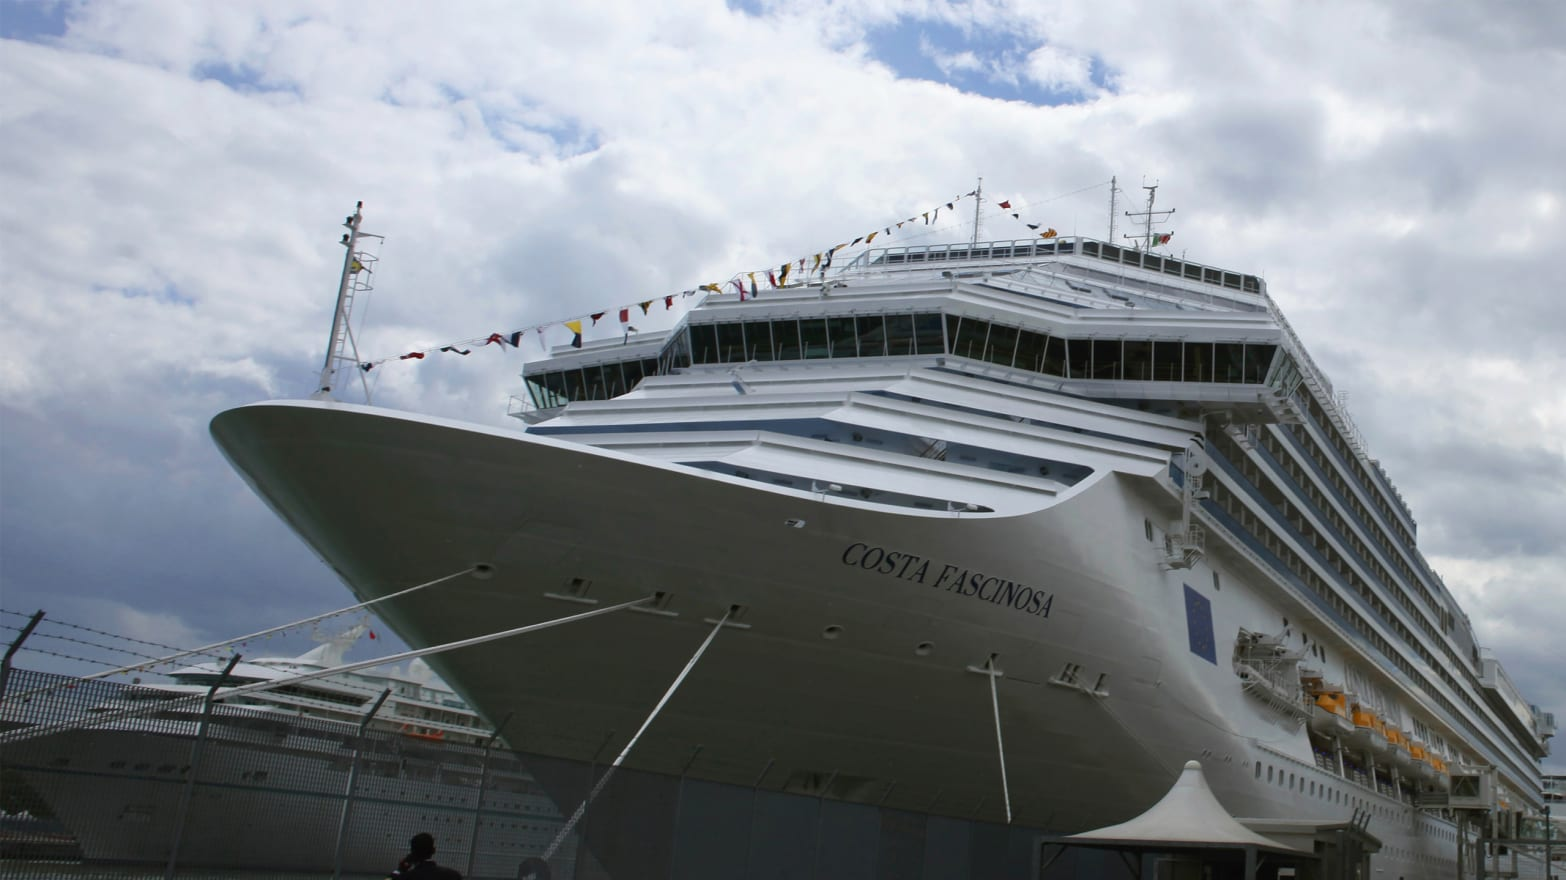 Terrorists Can't Stop These Cruise Ships